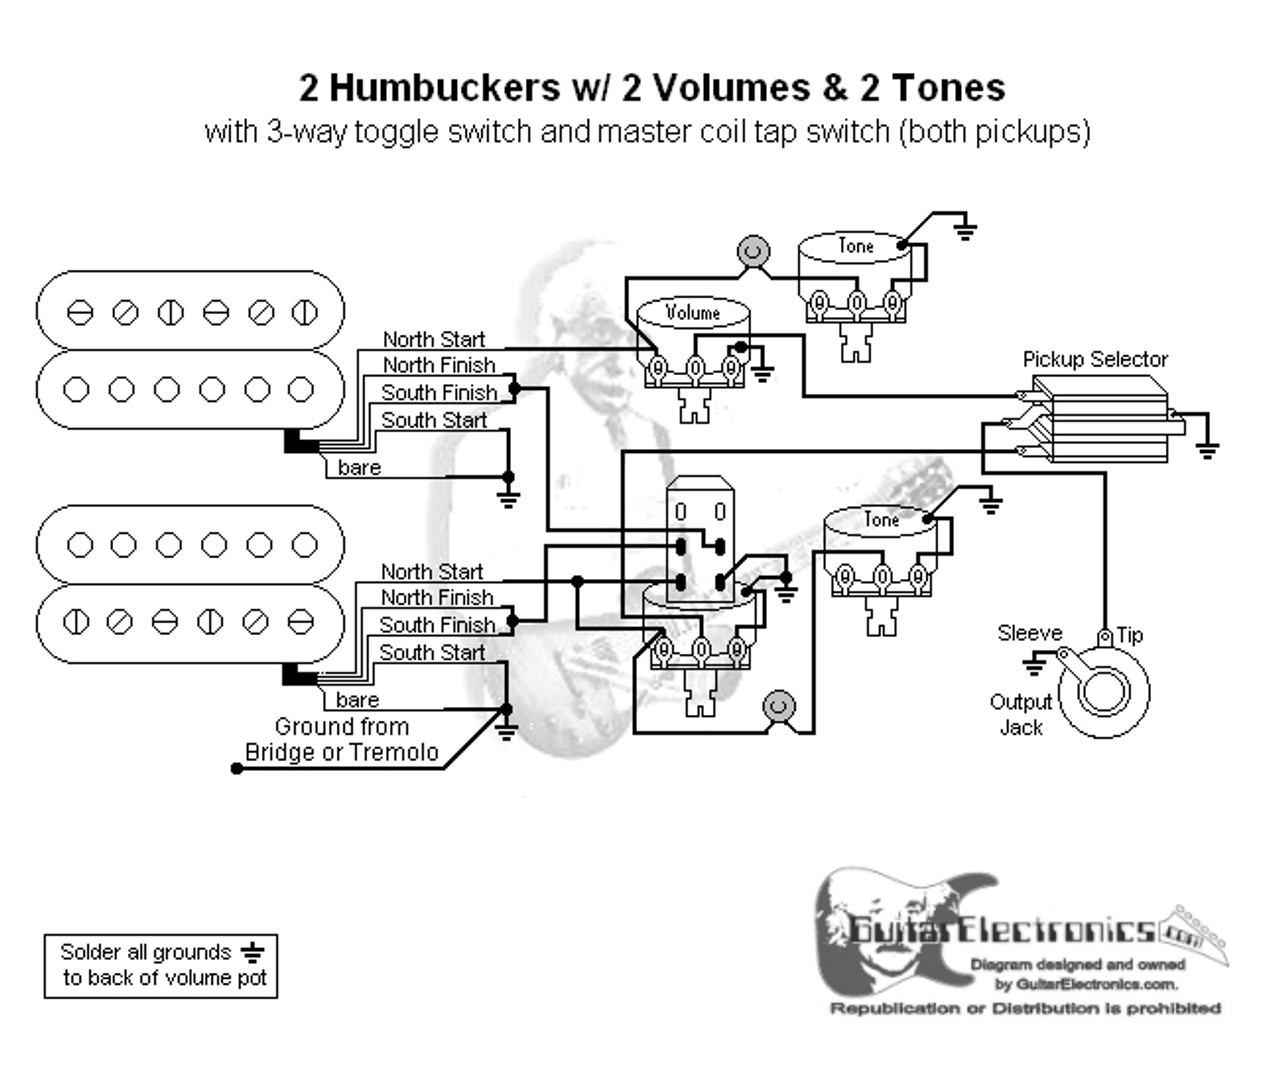 3 Way Toggle Switch Wiring Diagram: 2 Humbuckers/3-Way Toggle Switch/2 Volumes/2 Tones/Coil Taprh:guitarelectronics.com,Design